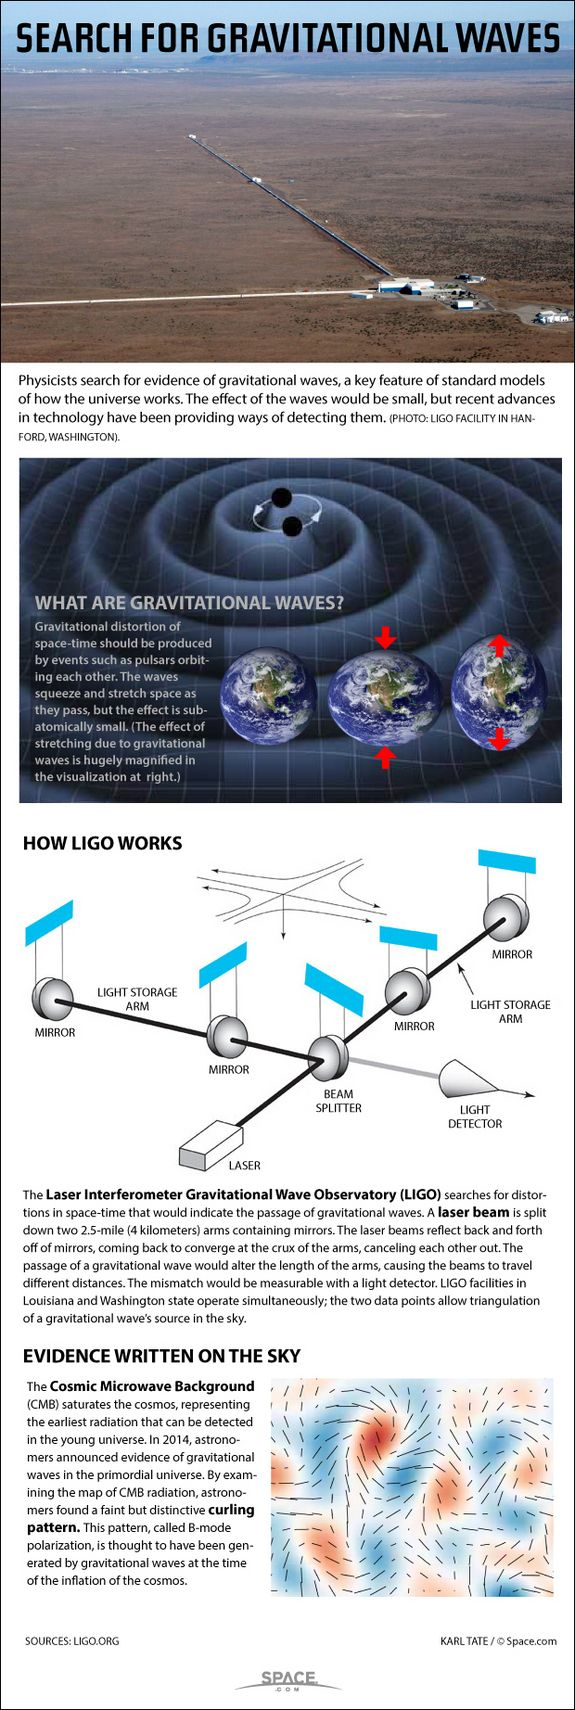 Diagrams show how LIGO detects gravitational waves.